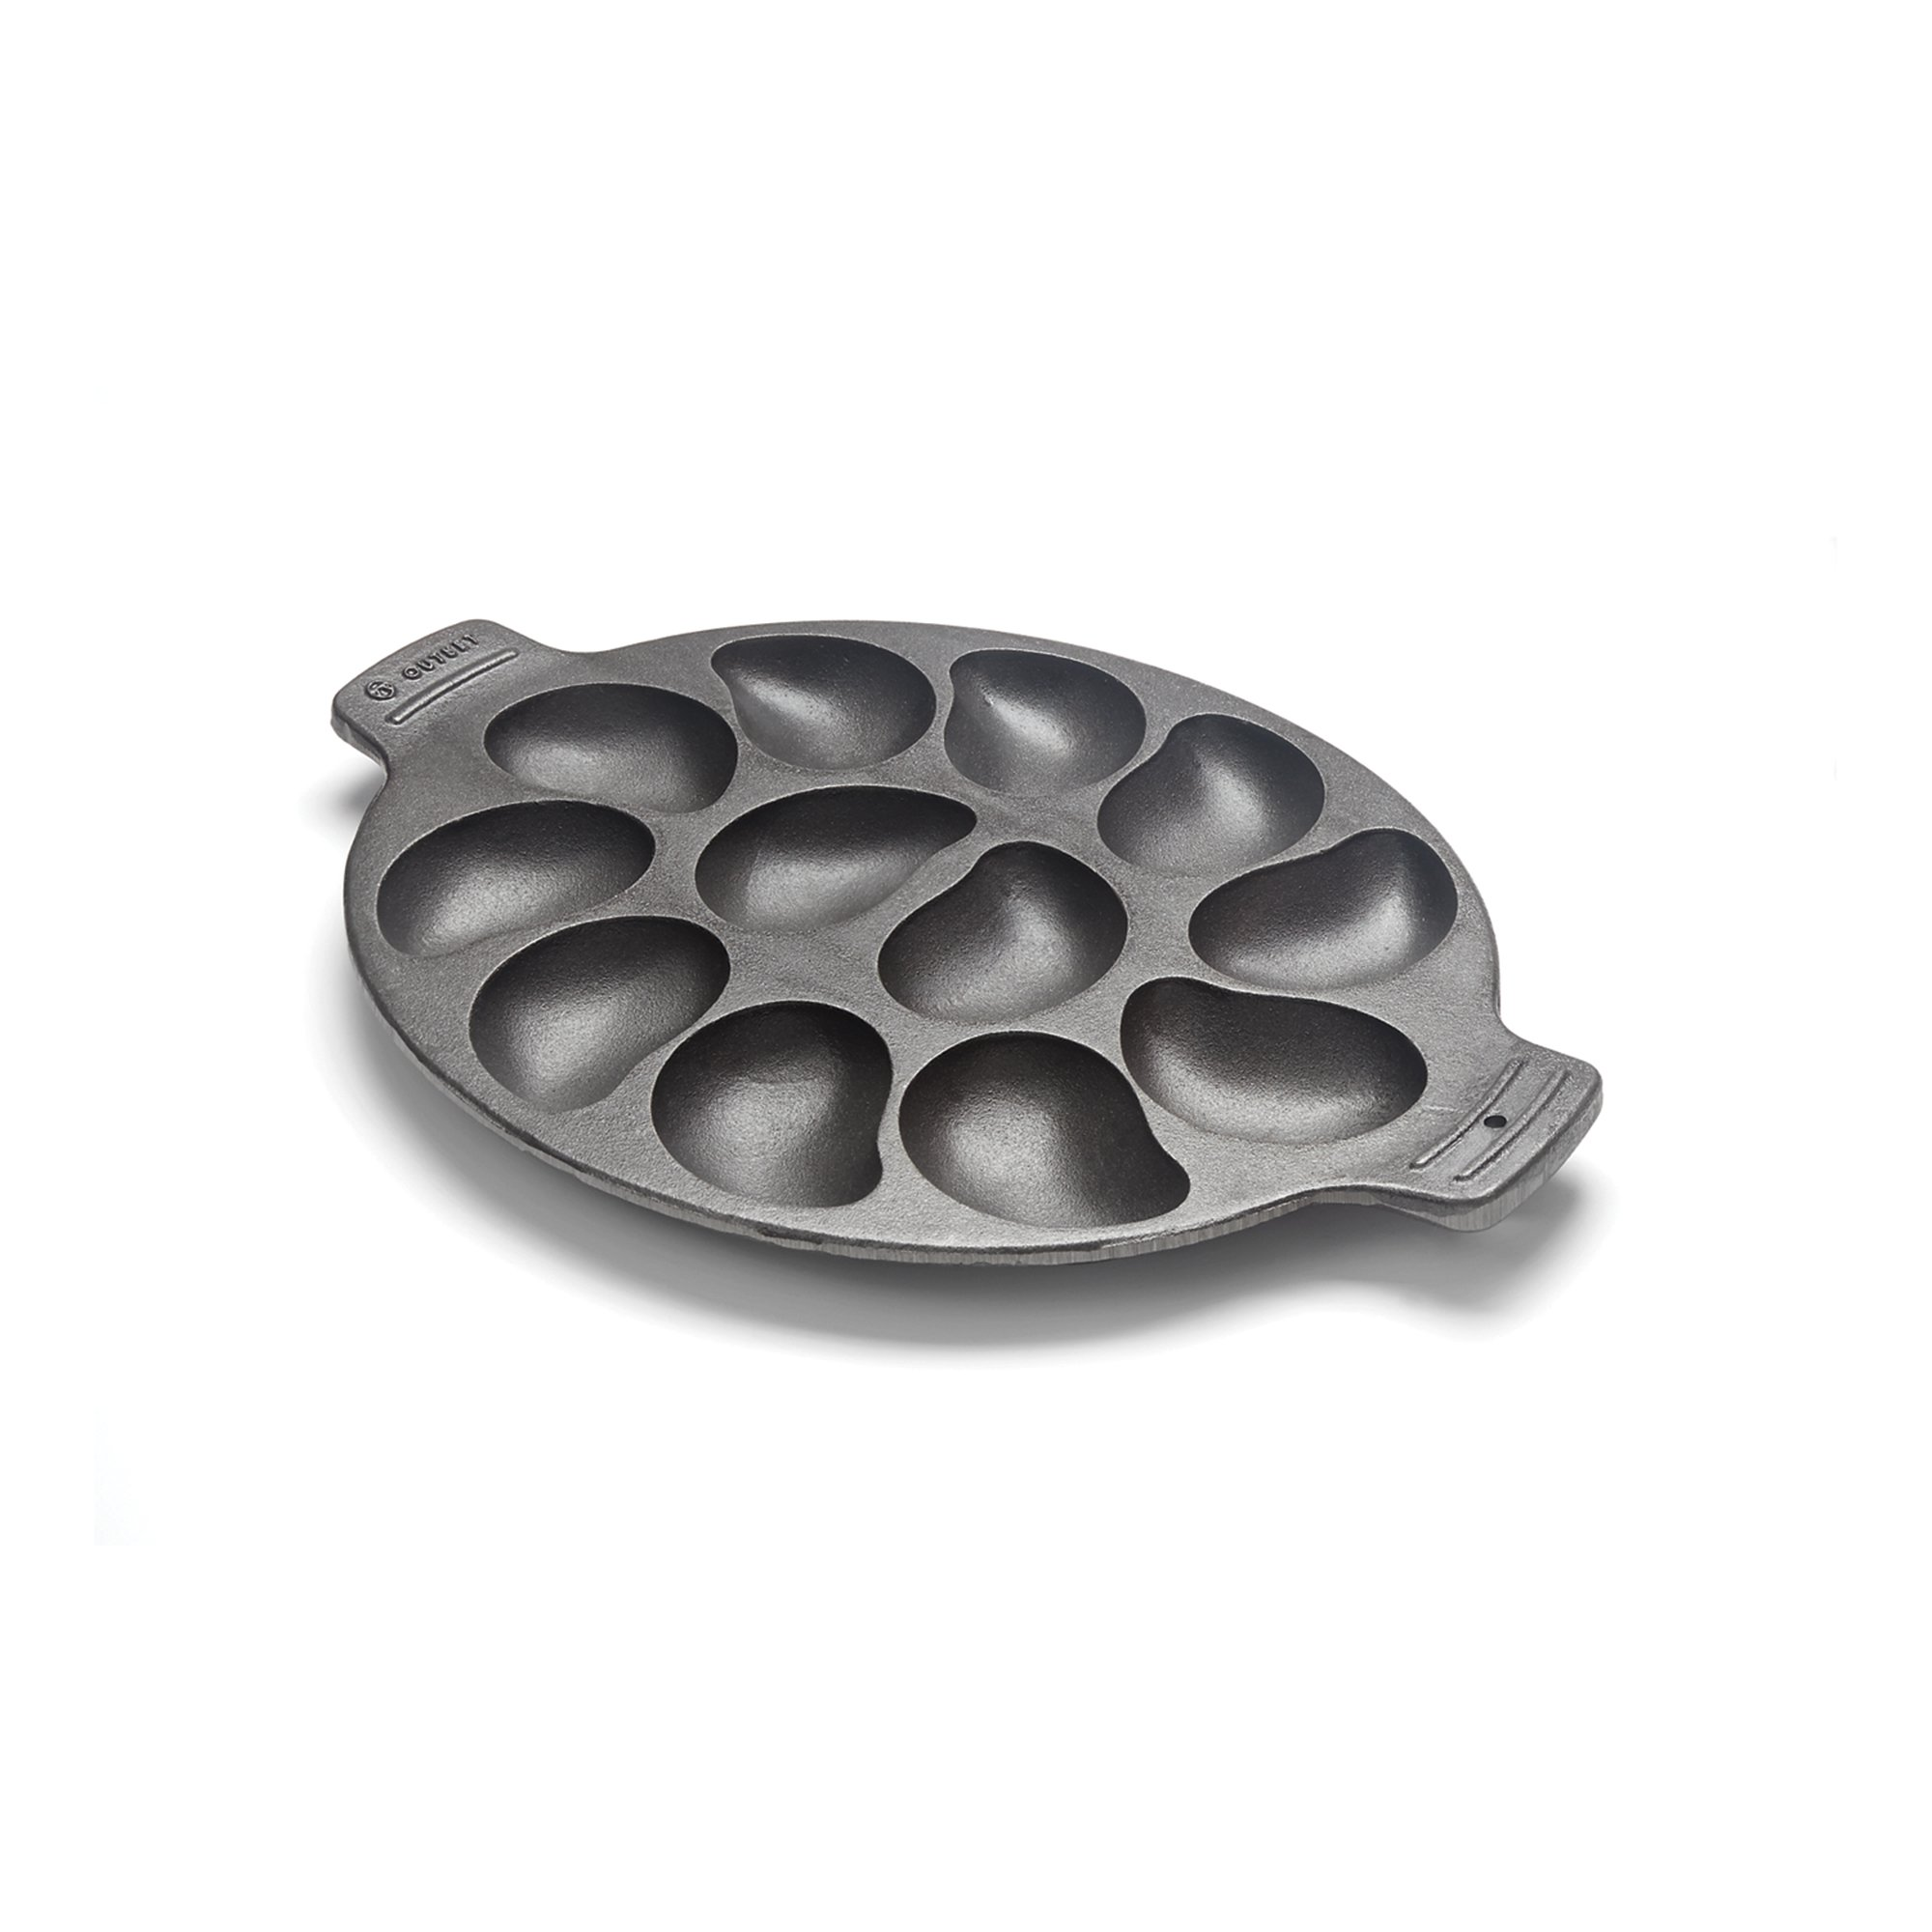 Outset 76225 Oyster Grill Pan by Outset (Image #1)